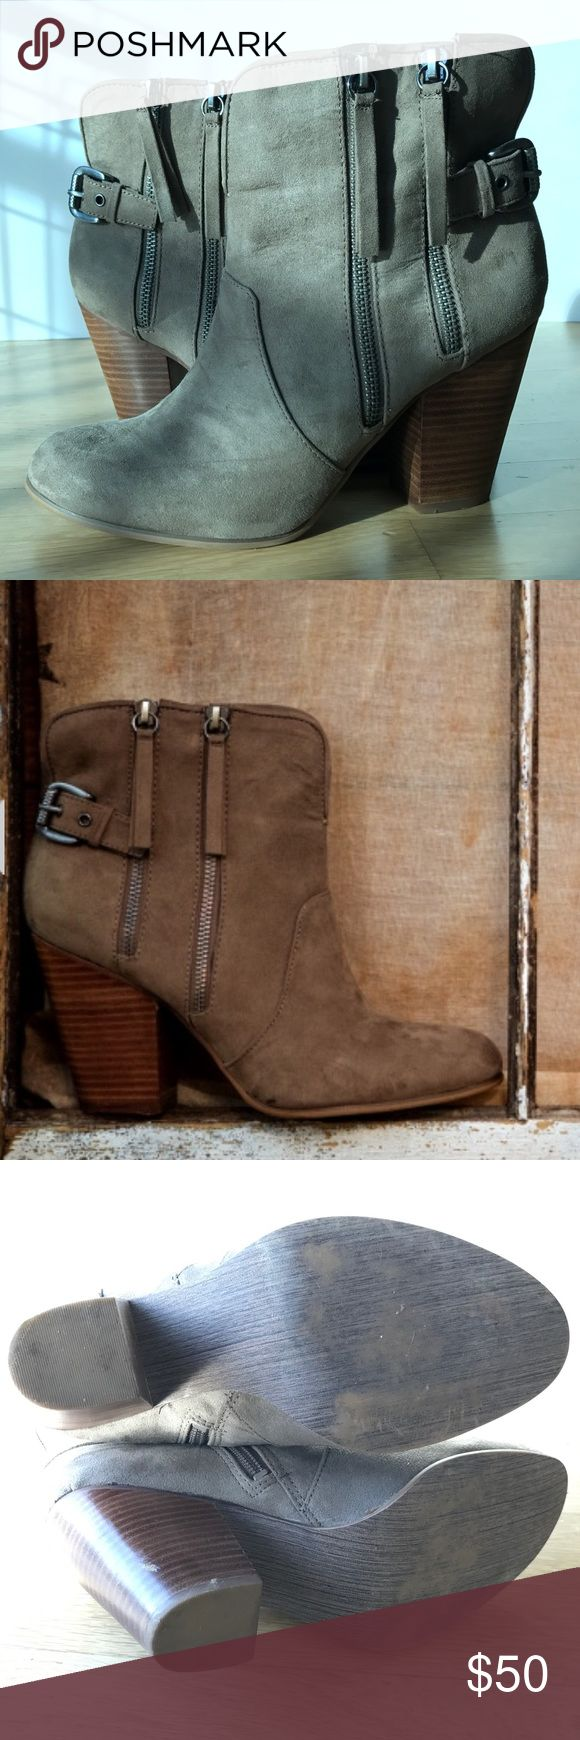 """Carlos by Carlos Santana boots Carlos by Carlos Santana boots. 6"""" tall shaft and 3.5"""" heel in brown. Worn a handful of times in great condition. Carlos Santana Shoes Ankle Boots & Booties"""